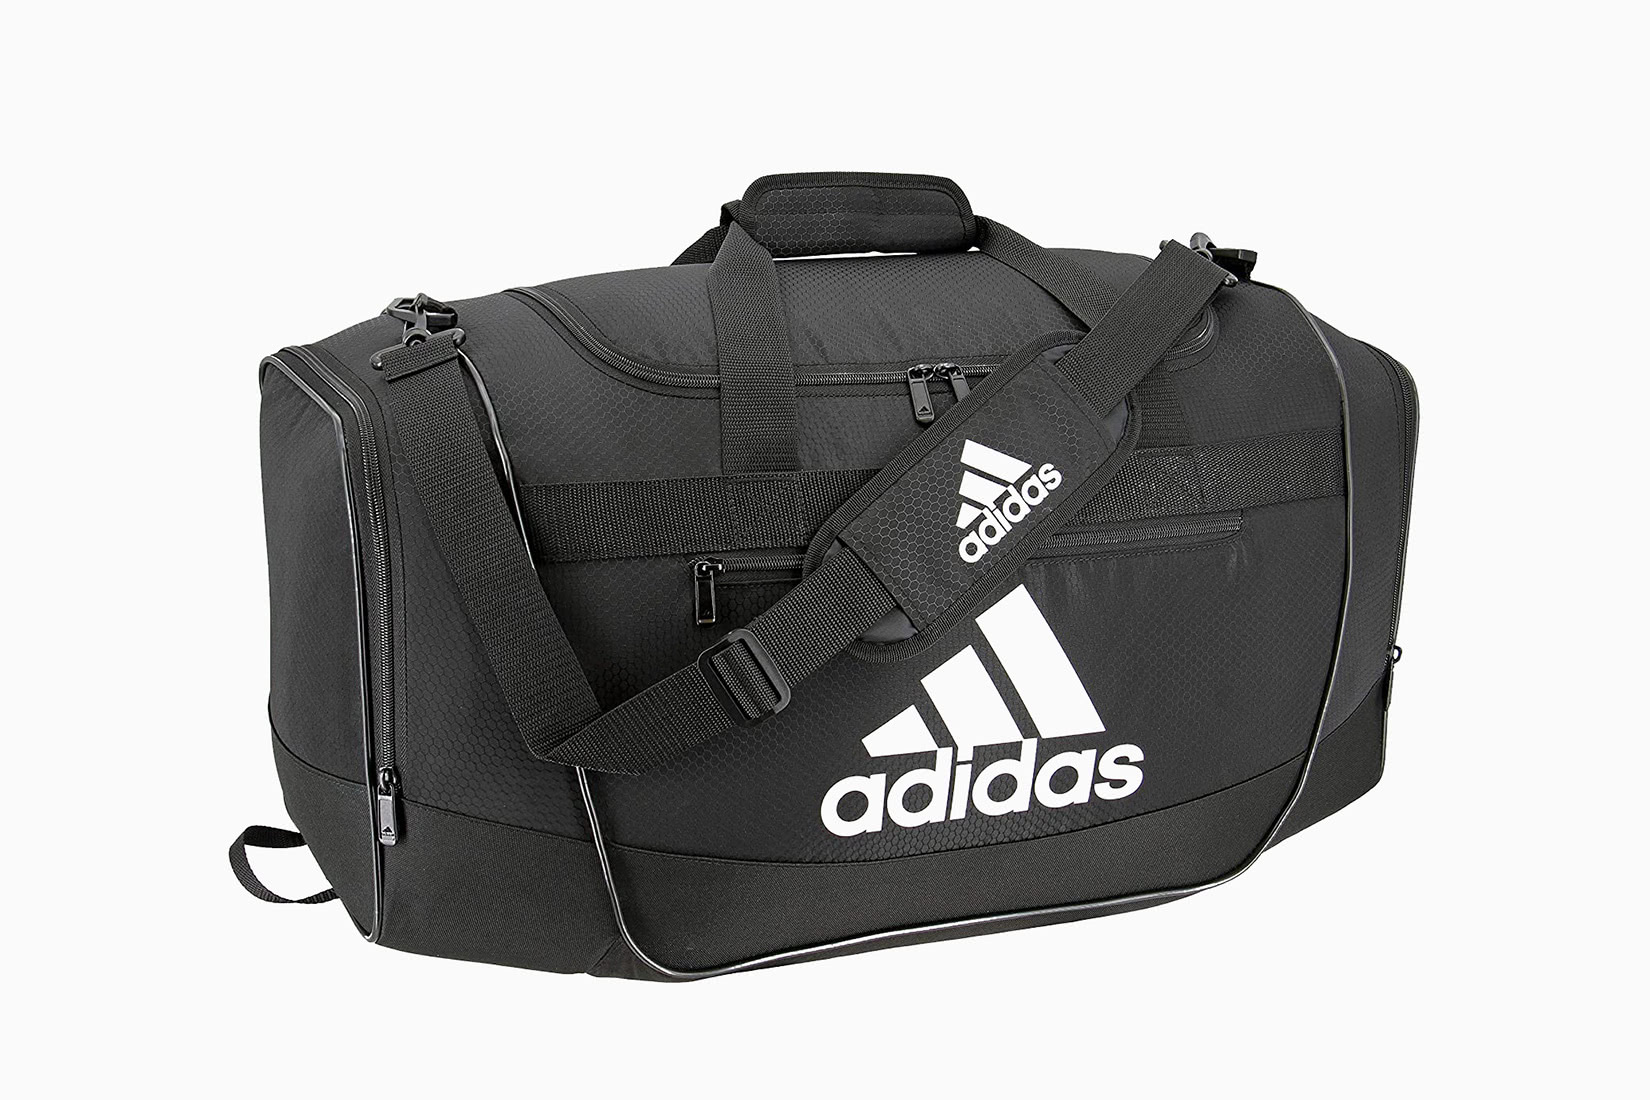 best men gym bag duffel adidas defender III - Luxe Digital